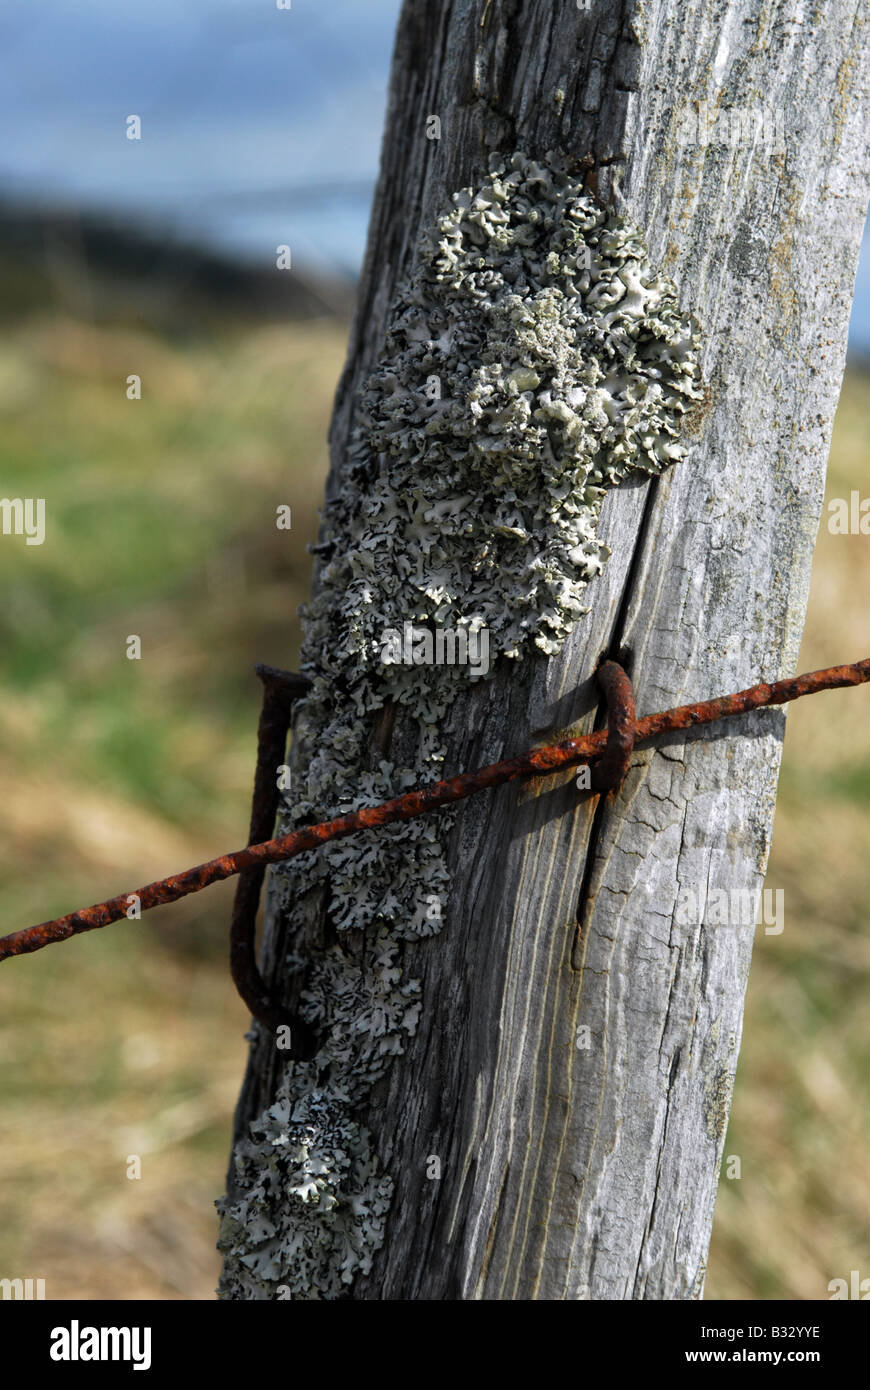 Old Fence Post Barbed Wire Stock Photos & Old Fence Post Barbed Wire ...